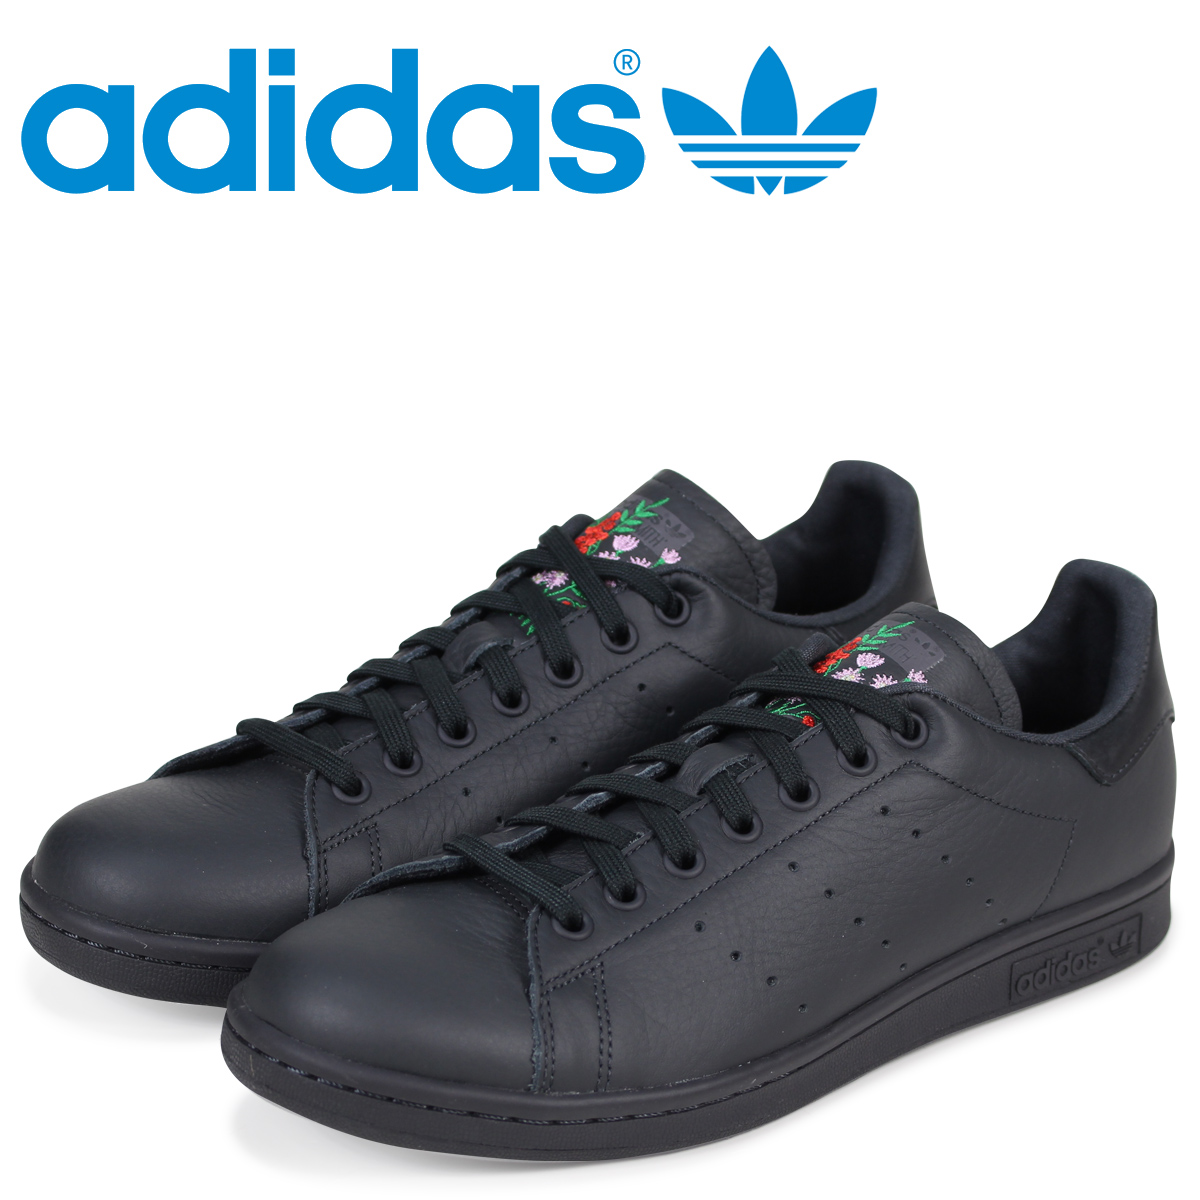 adidas Originals Adidas Stan Smith sneakers STAN SMITH men CQ2197 black originals [2/22 Shinnyu load]